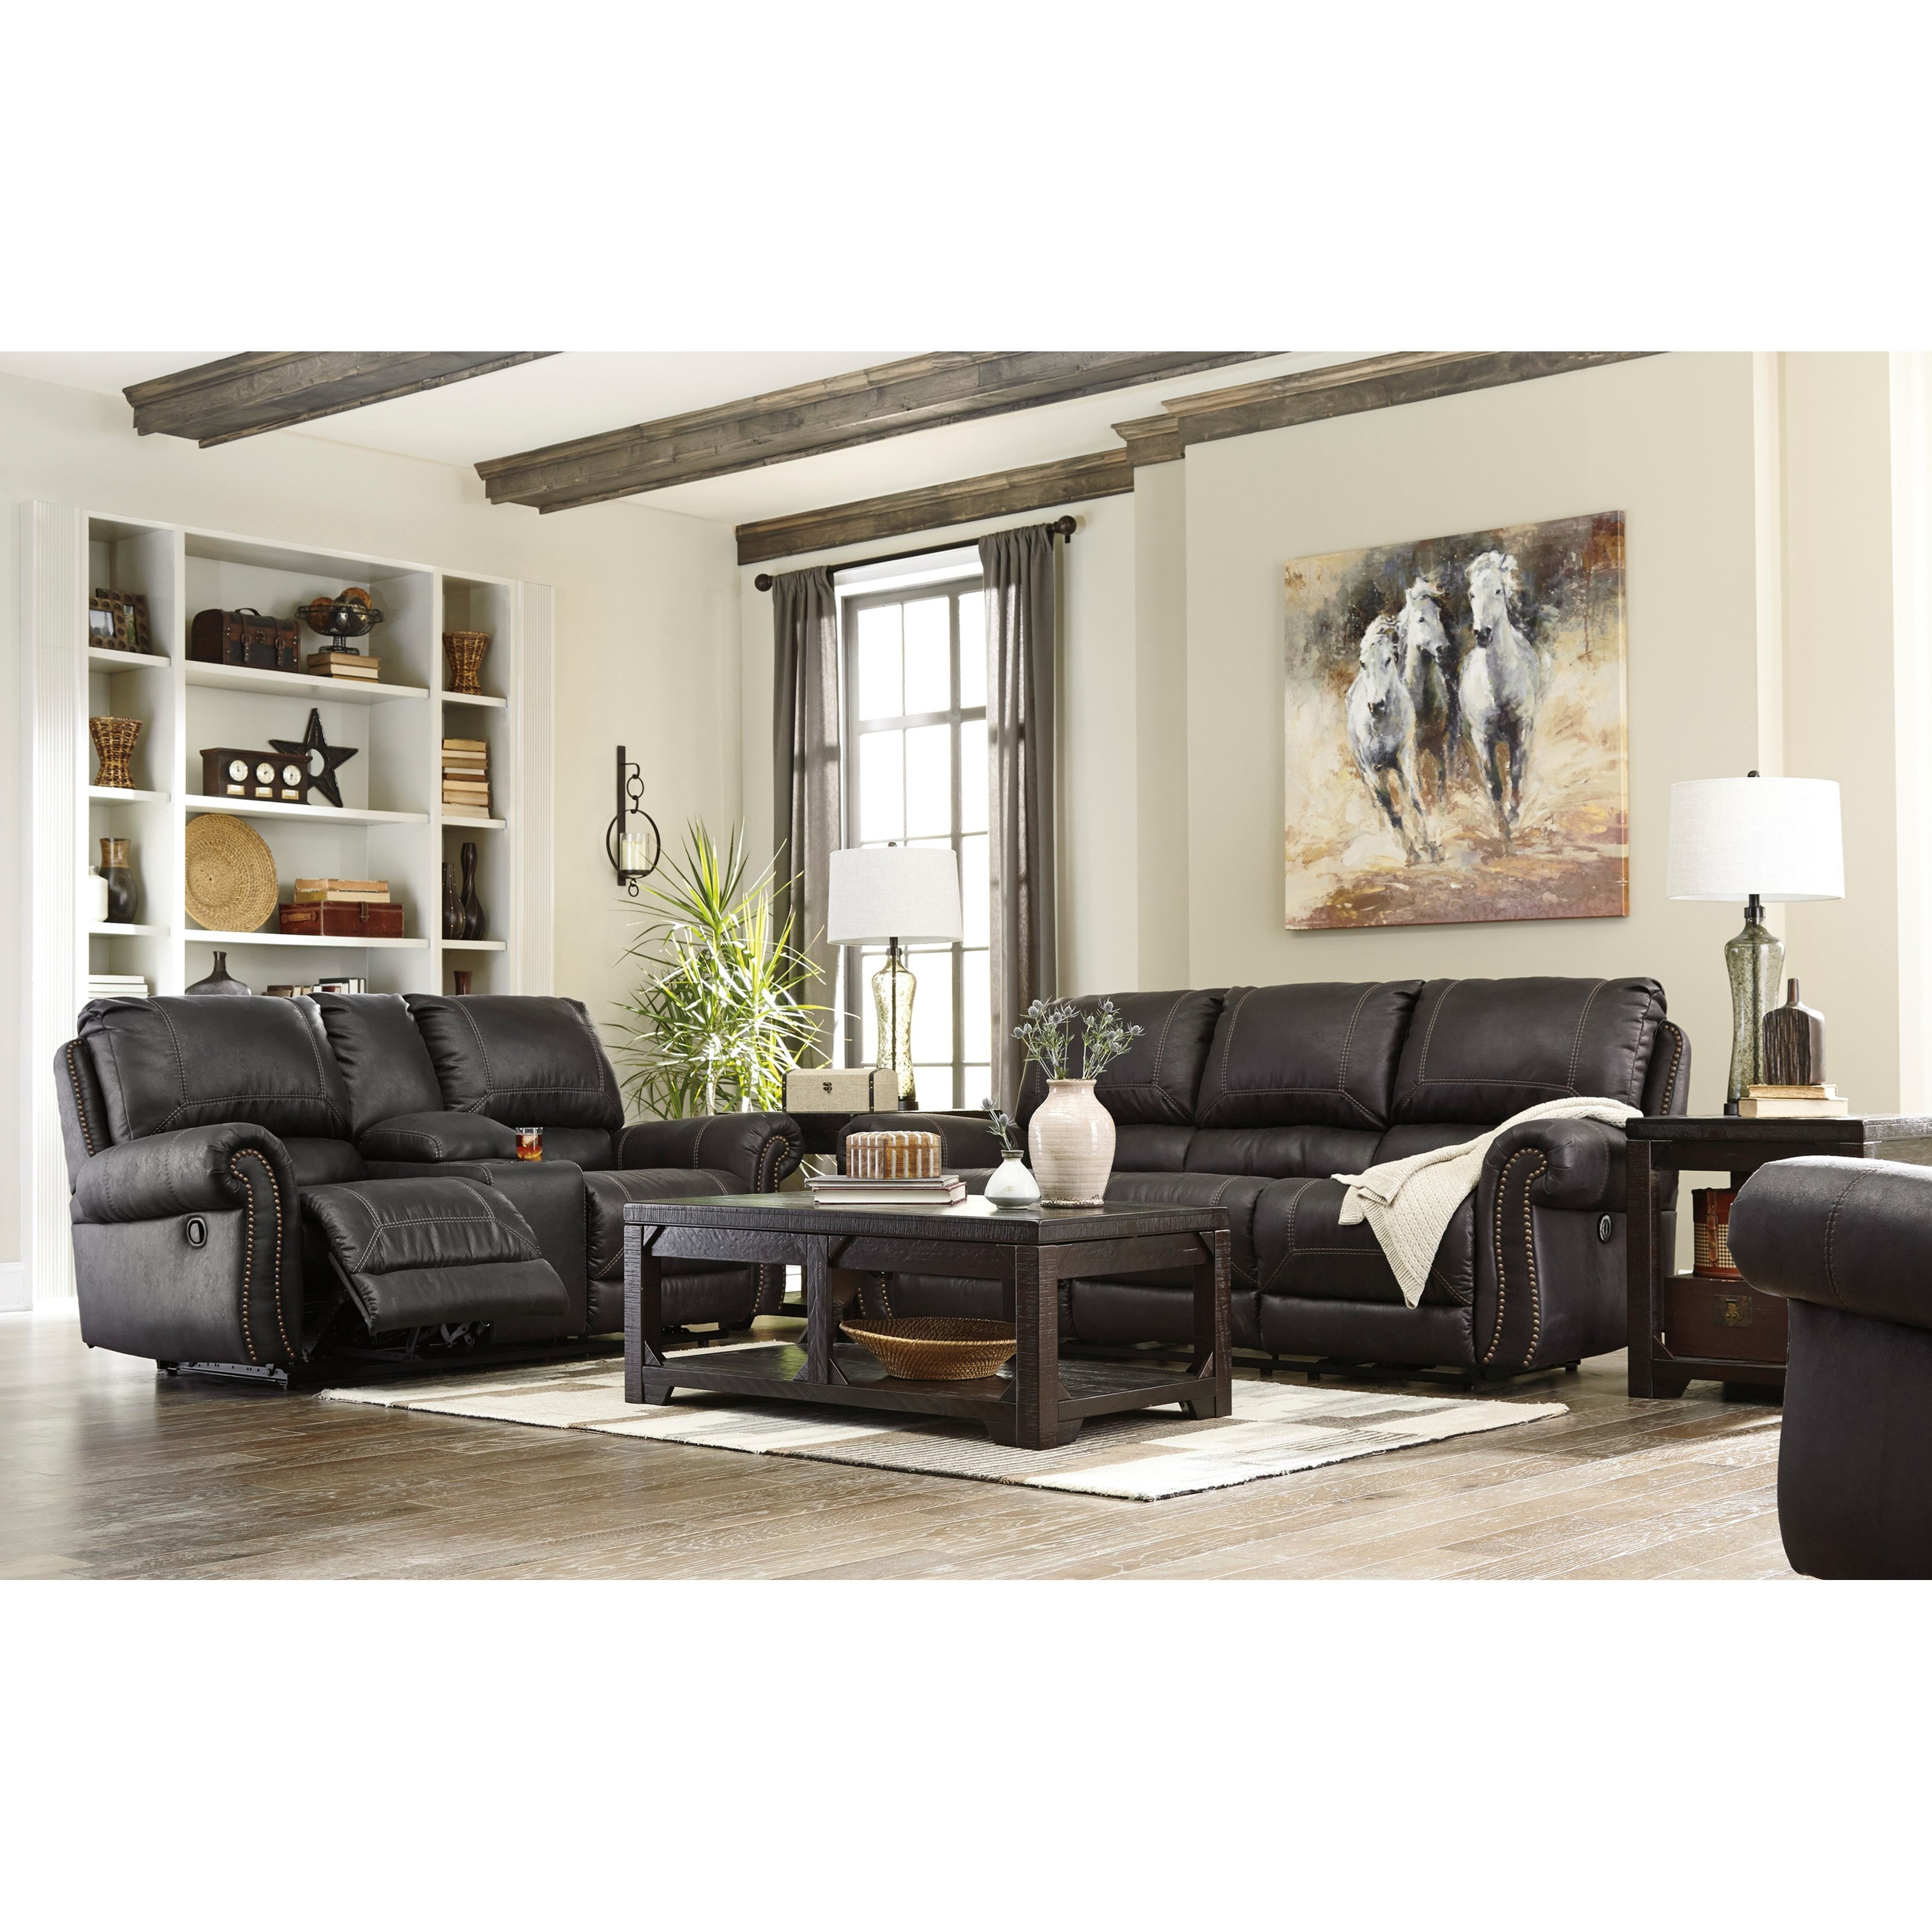 Signature Design by Ashley Milhaven Reclining Living Room Group - Item Number: 63303 Living Room Group 3